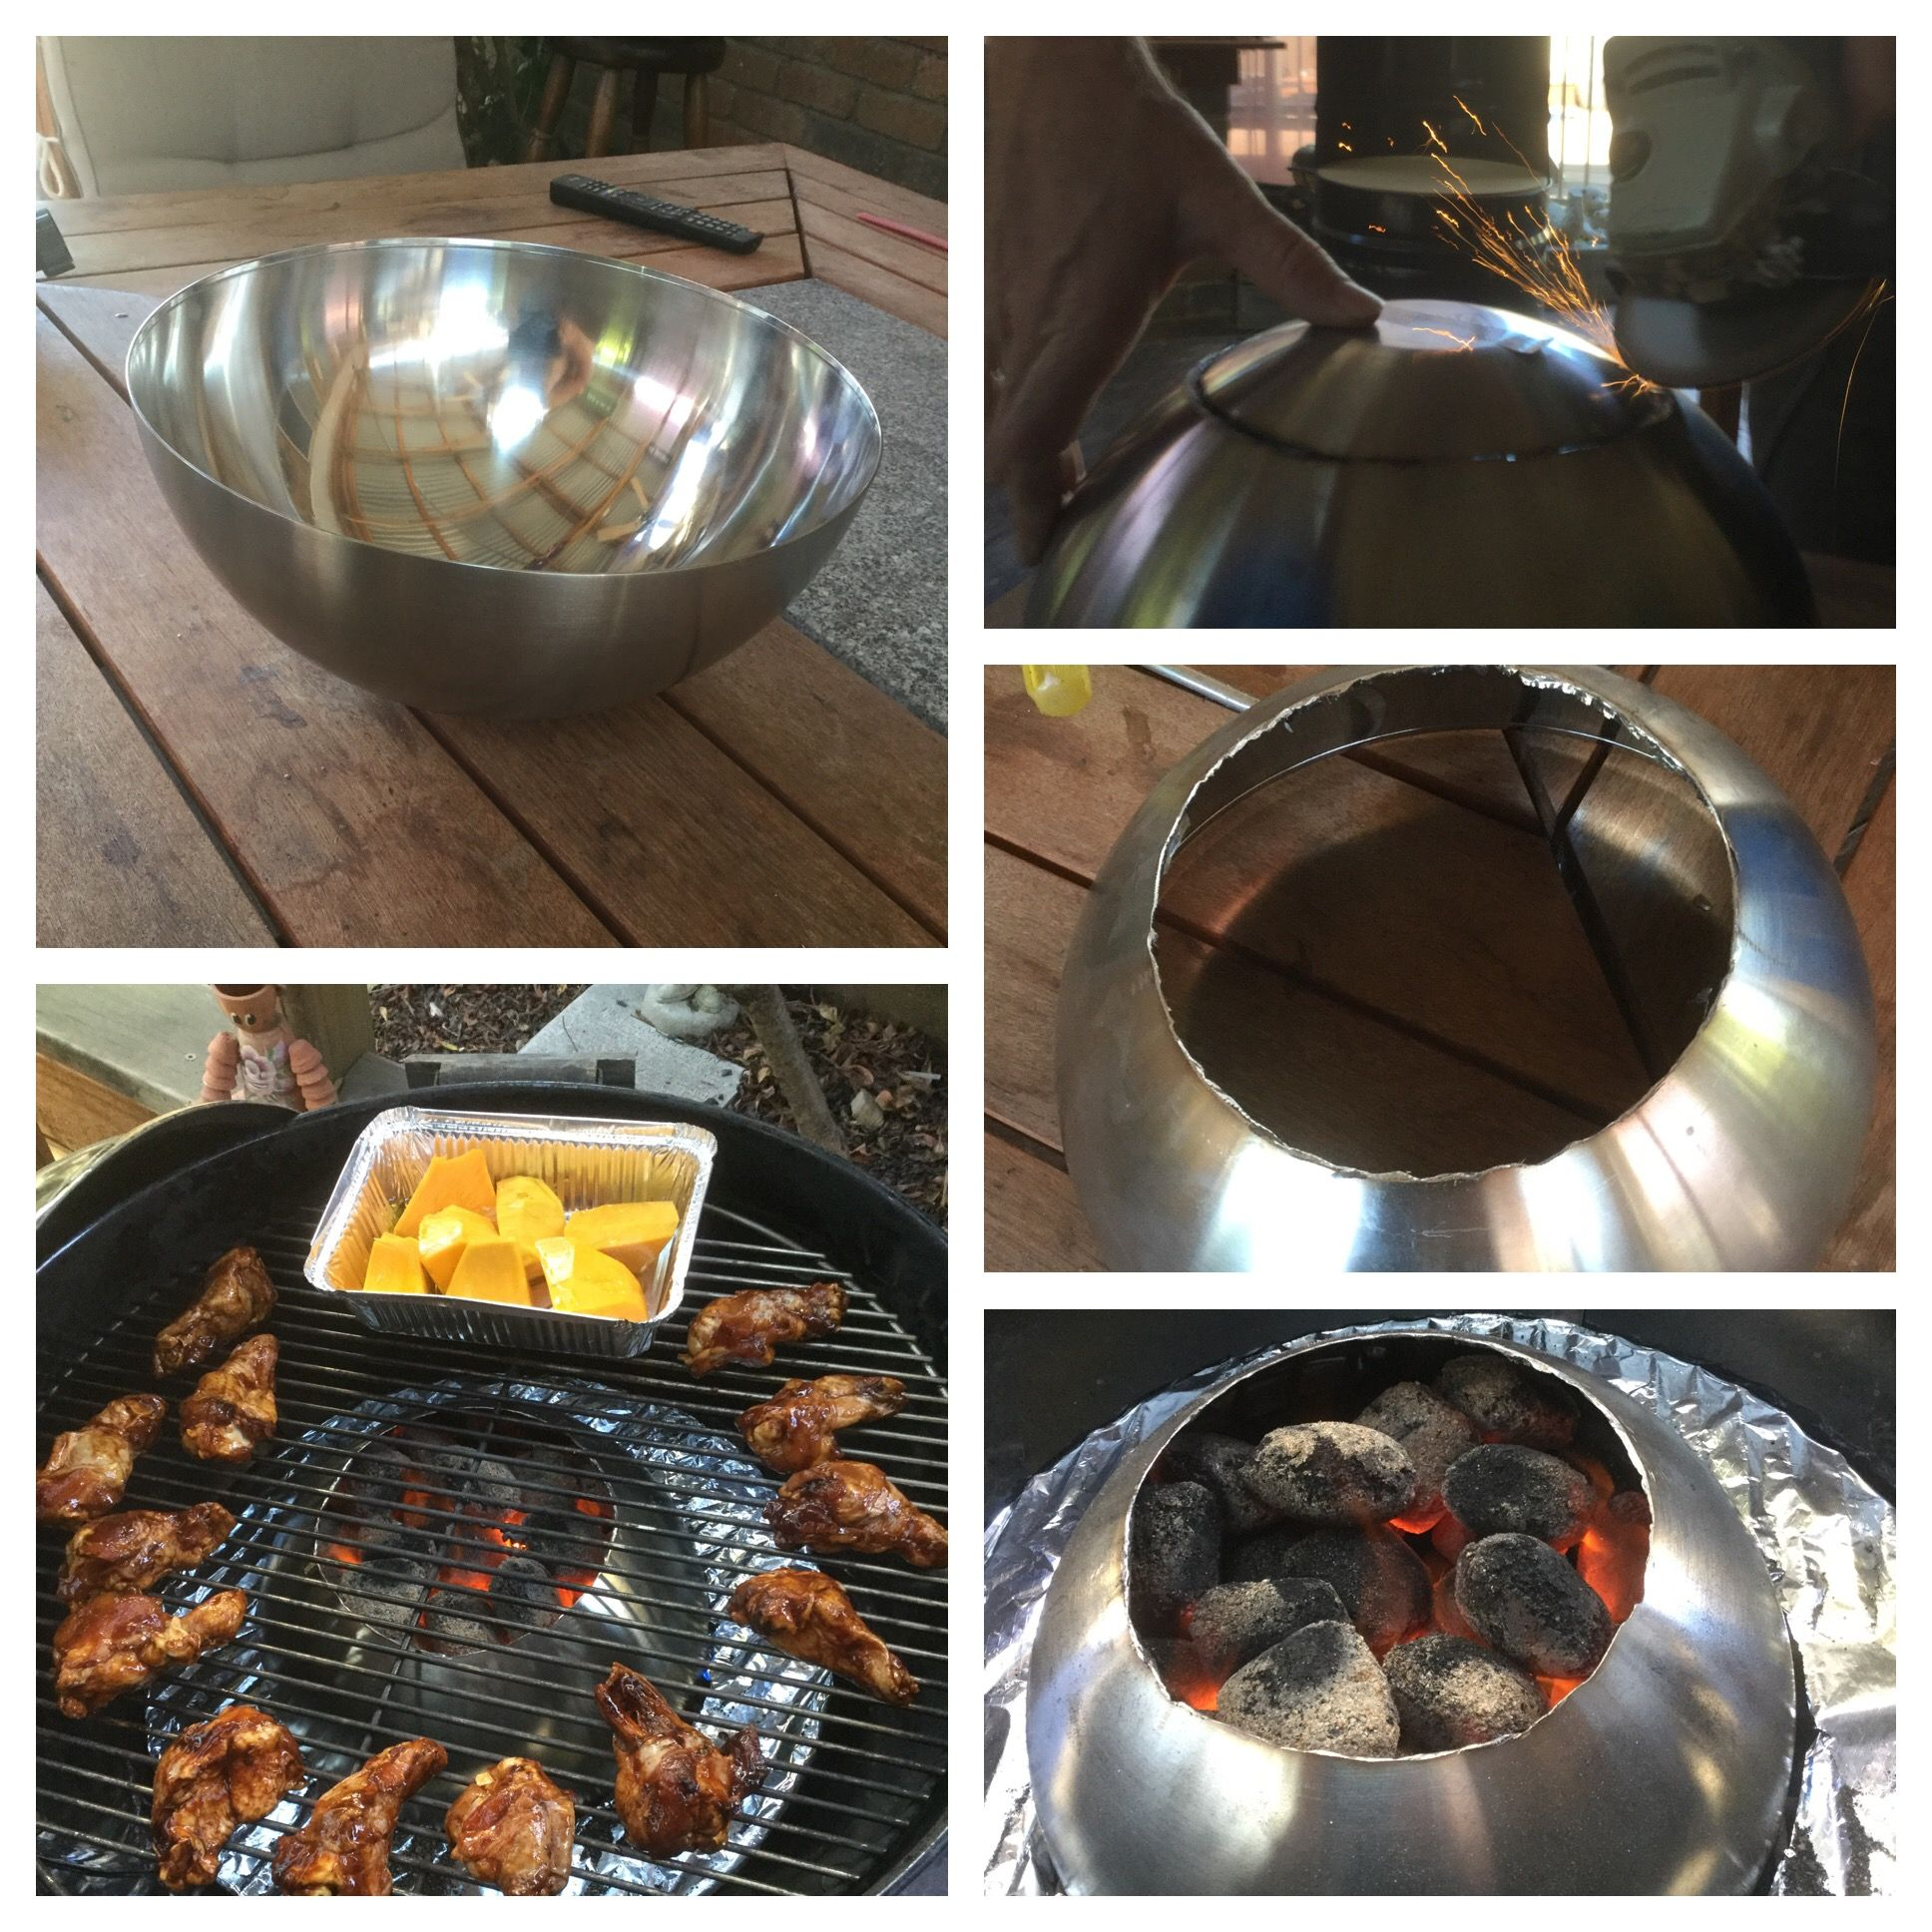 Ikea Barbecue Charbon De Bois home made 'weber' vortex made from ikea stainless bowl